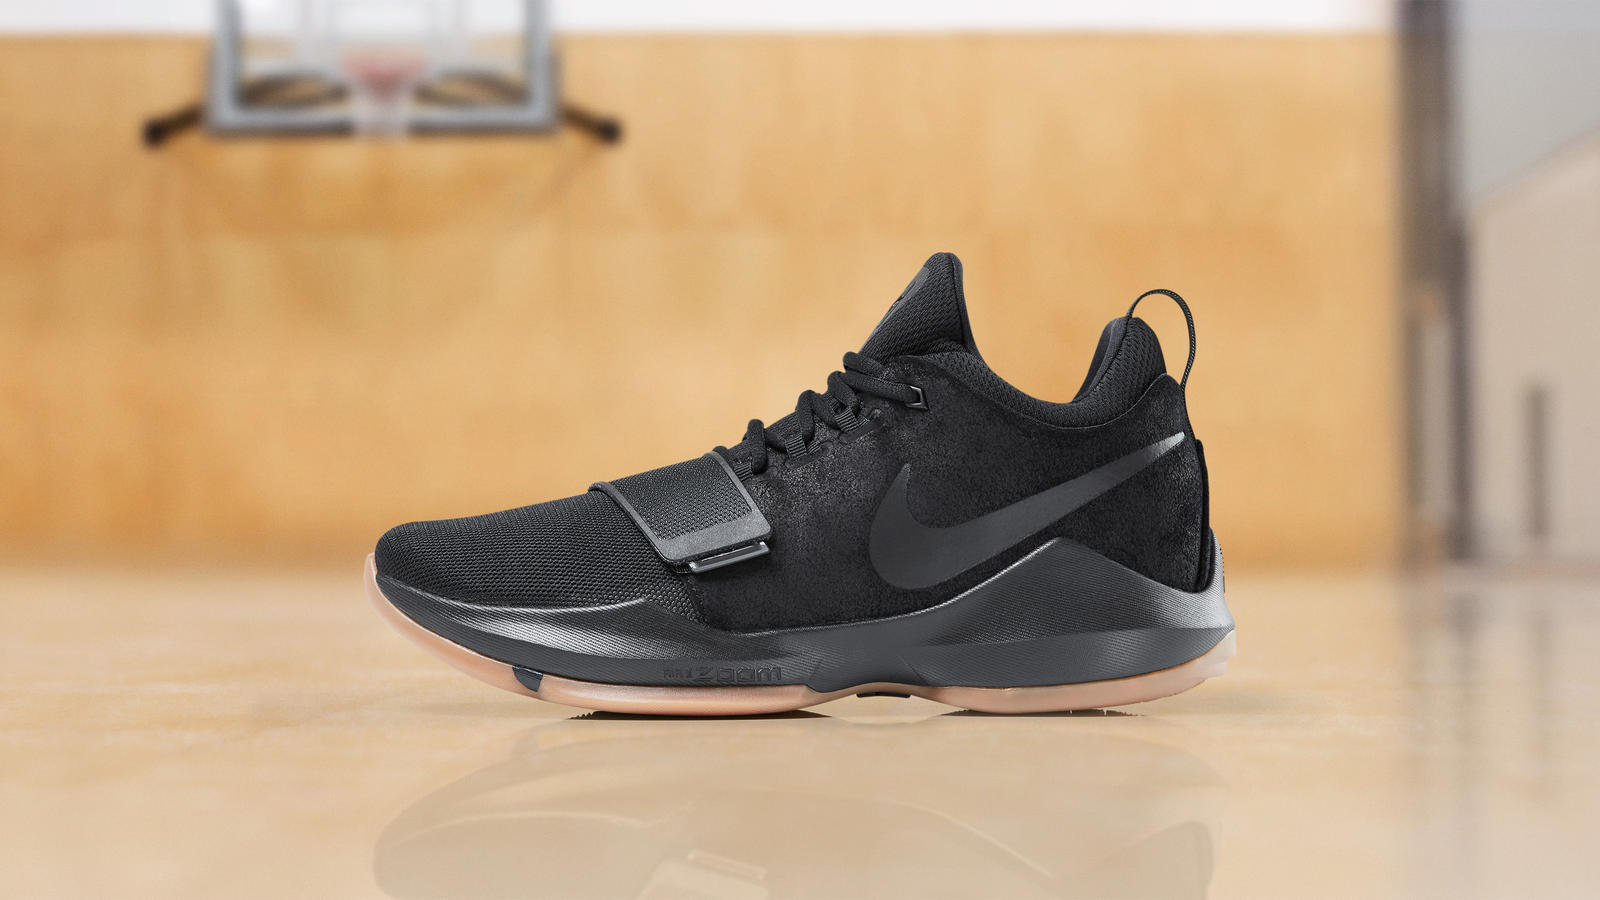 Pg1 black 1 hd 1600